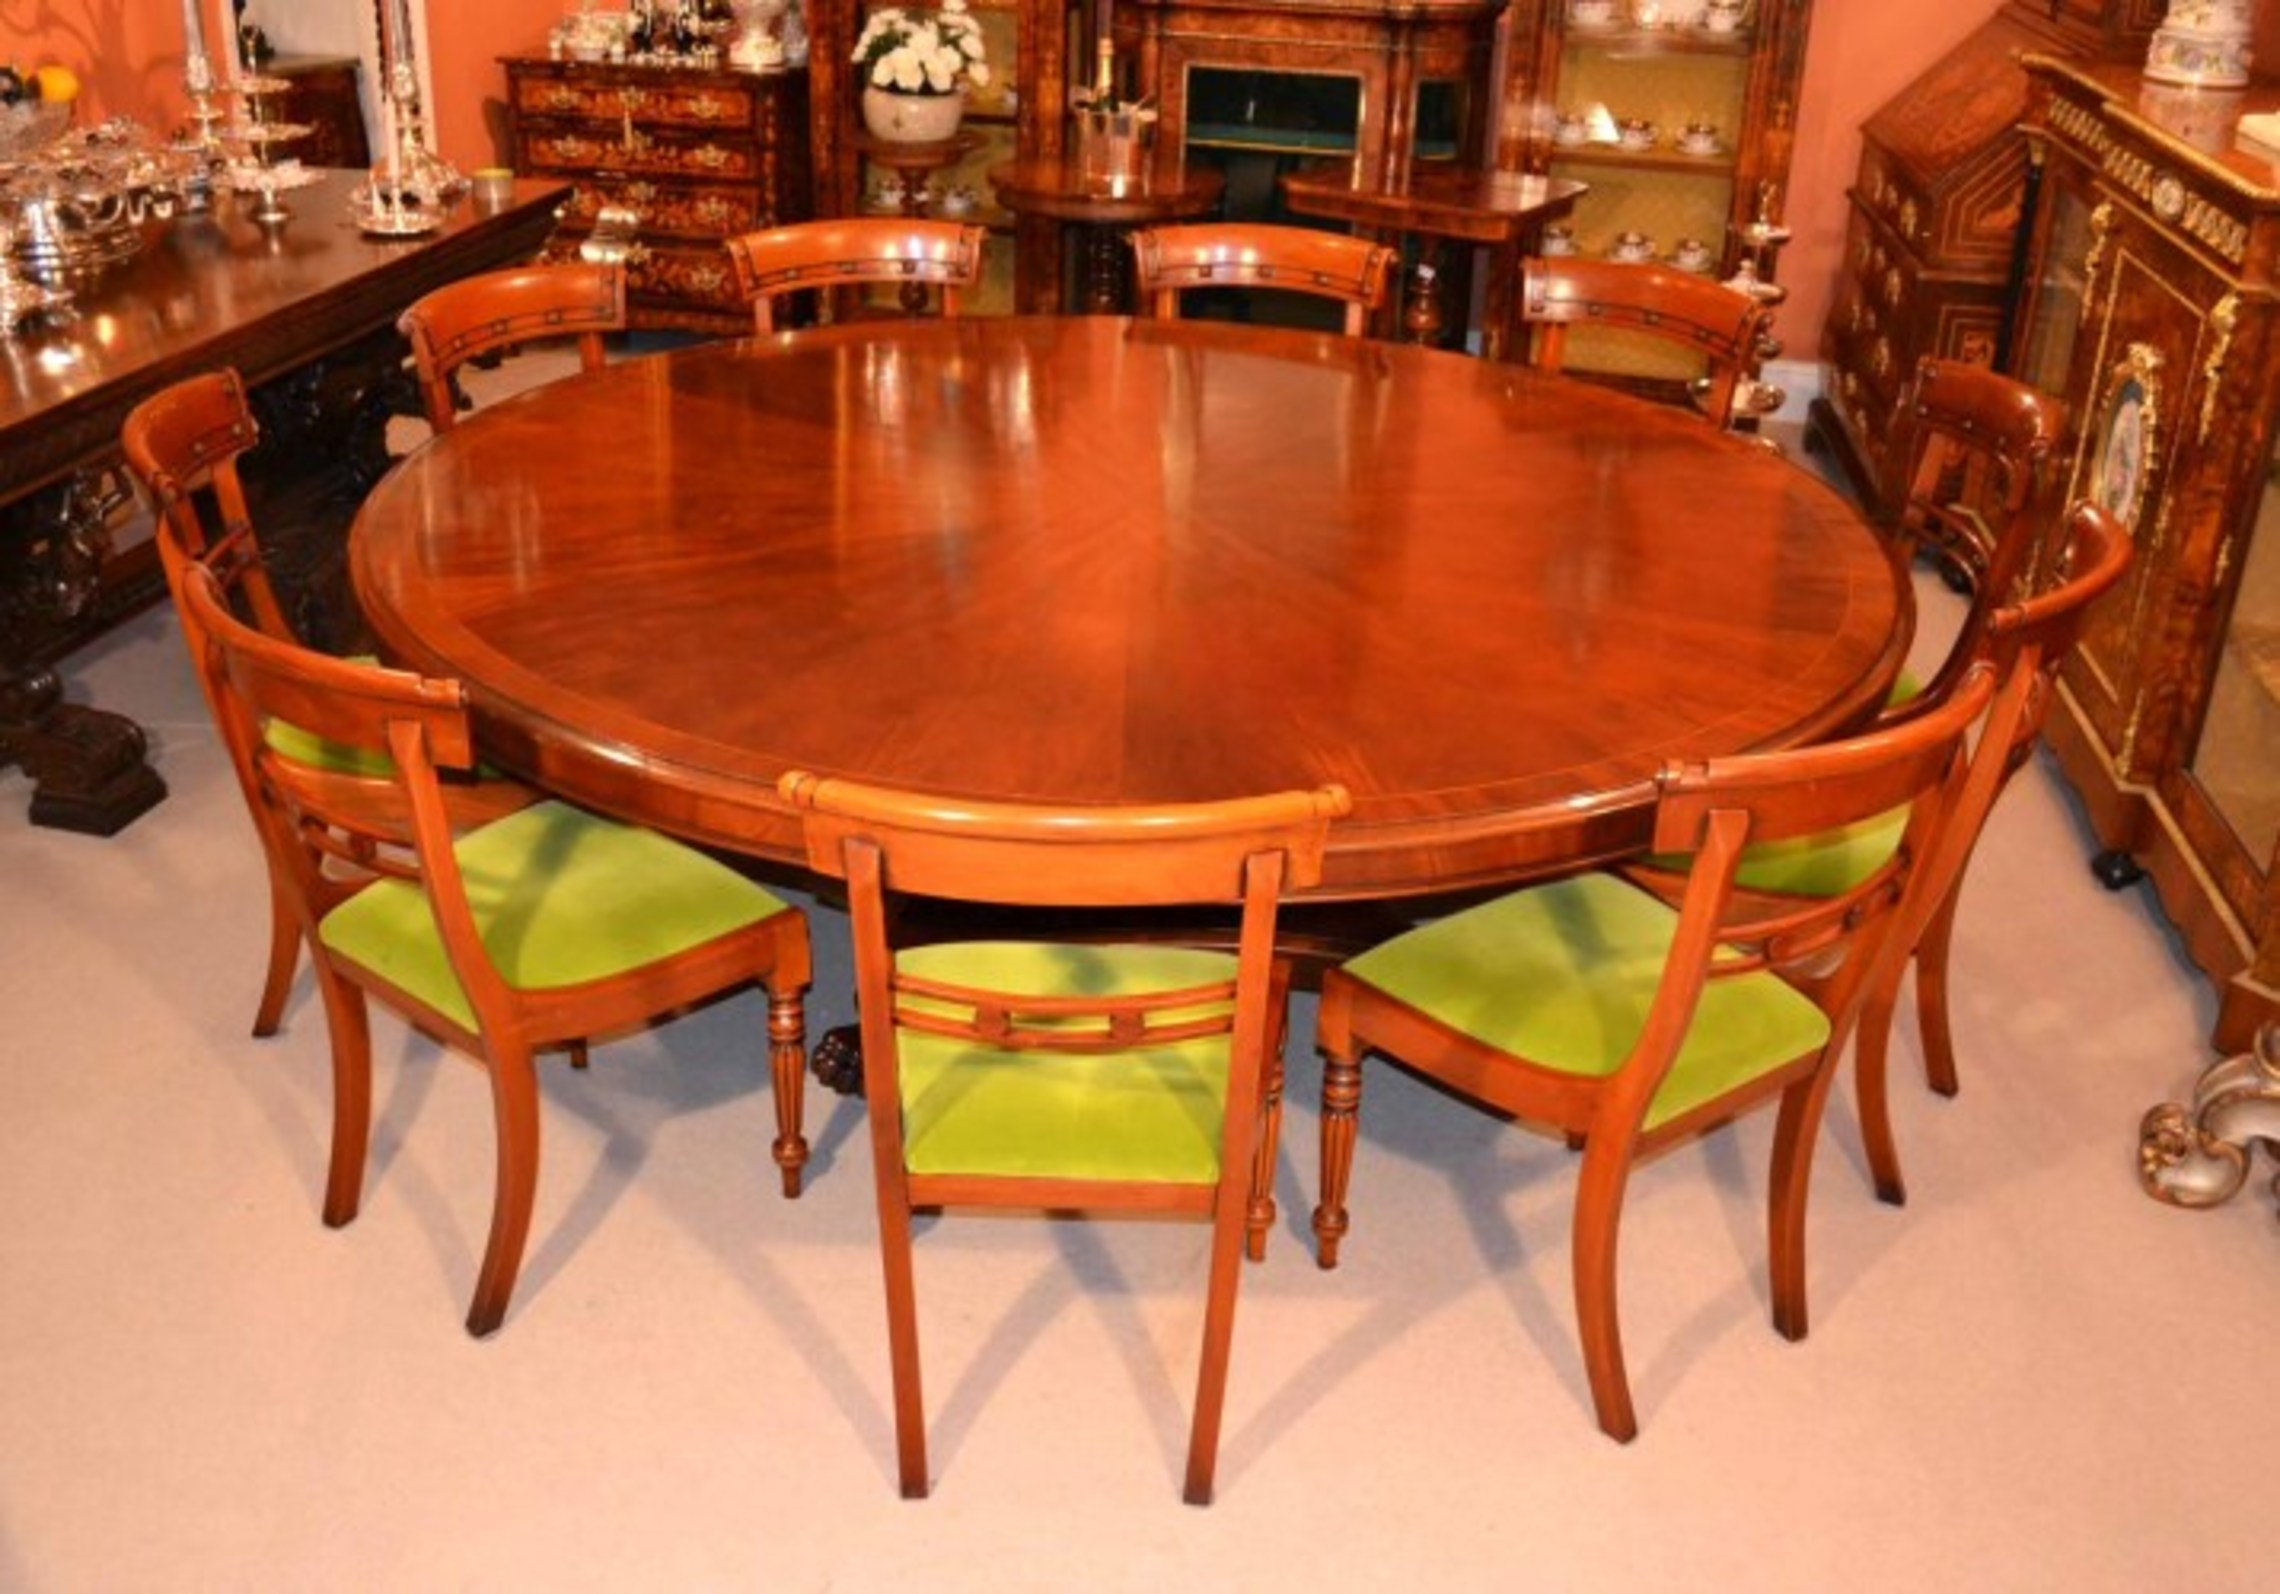 Vintage Dining Table & 10 Chairs 7 ft Round Mahogany